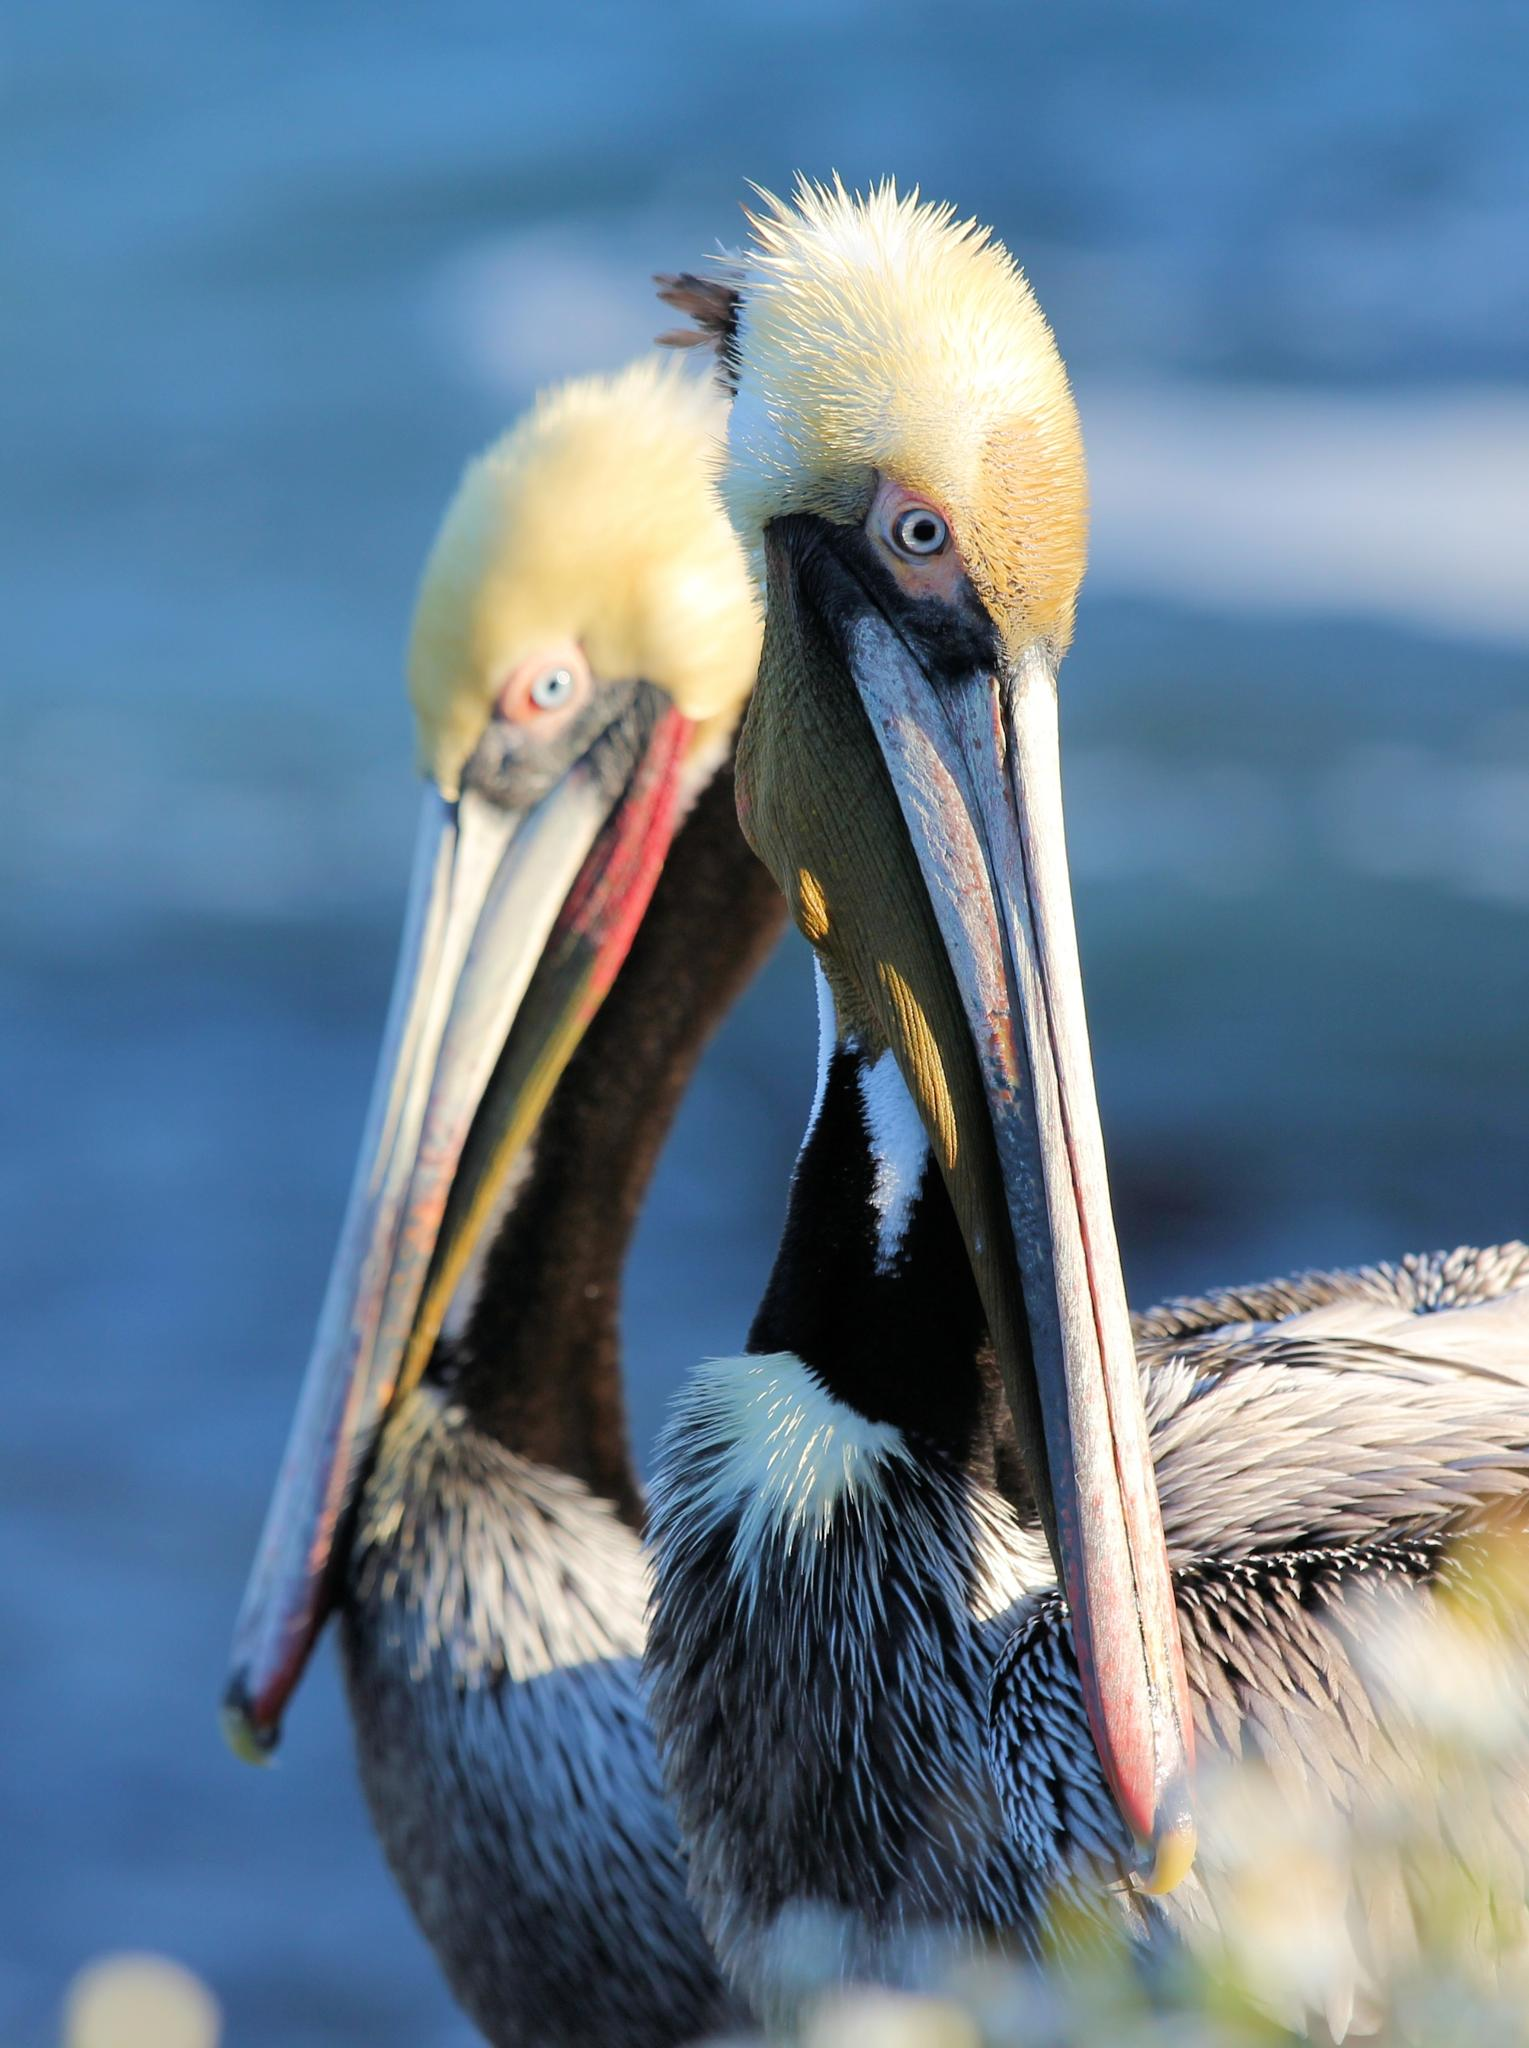 Pelicans at the cove by jane.girardot